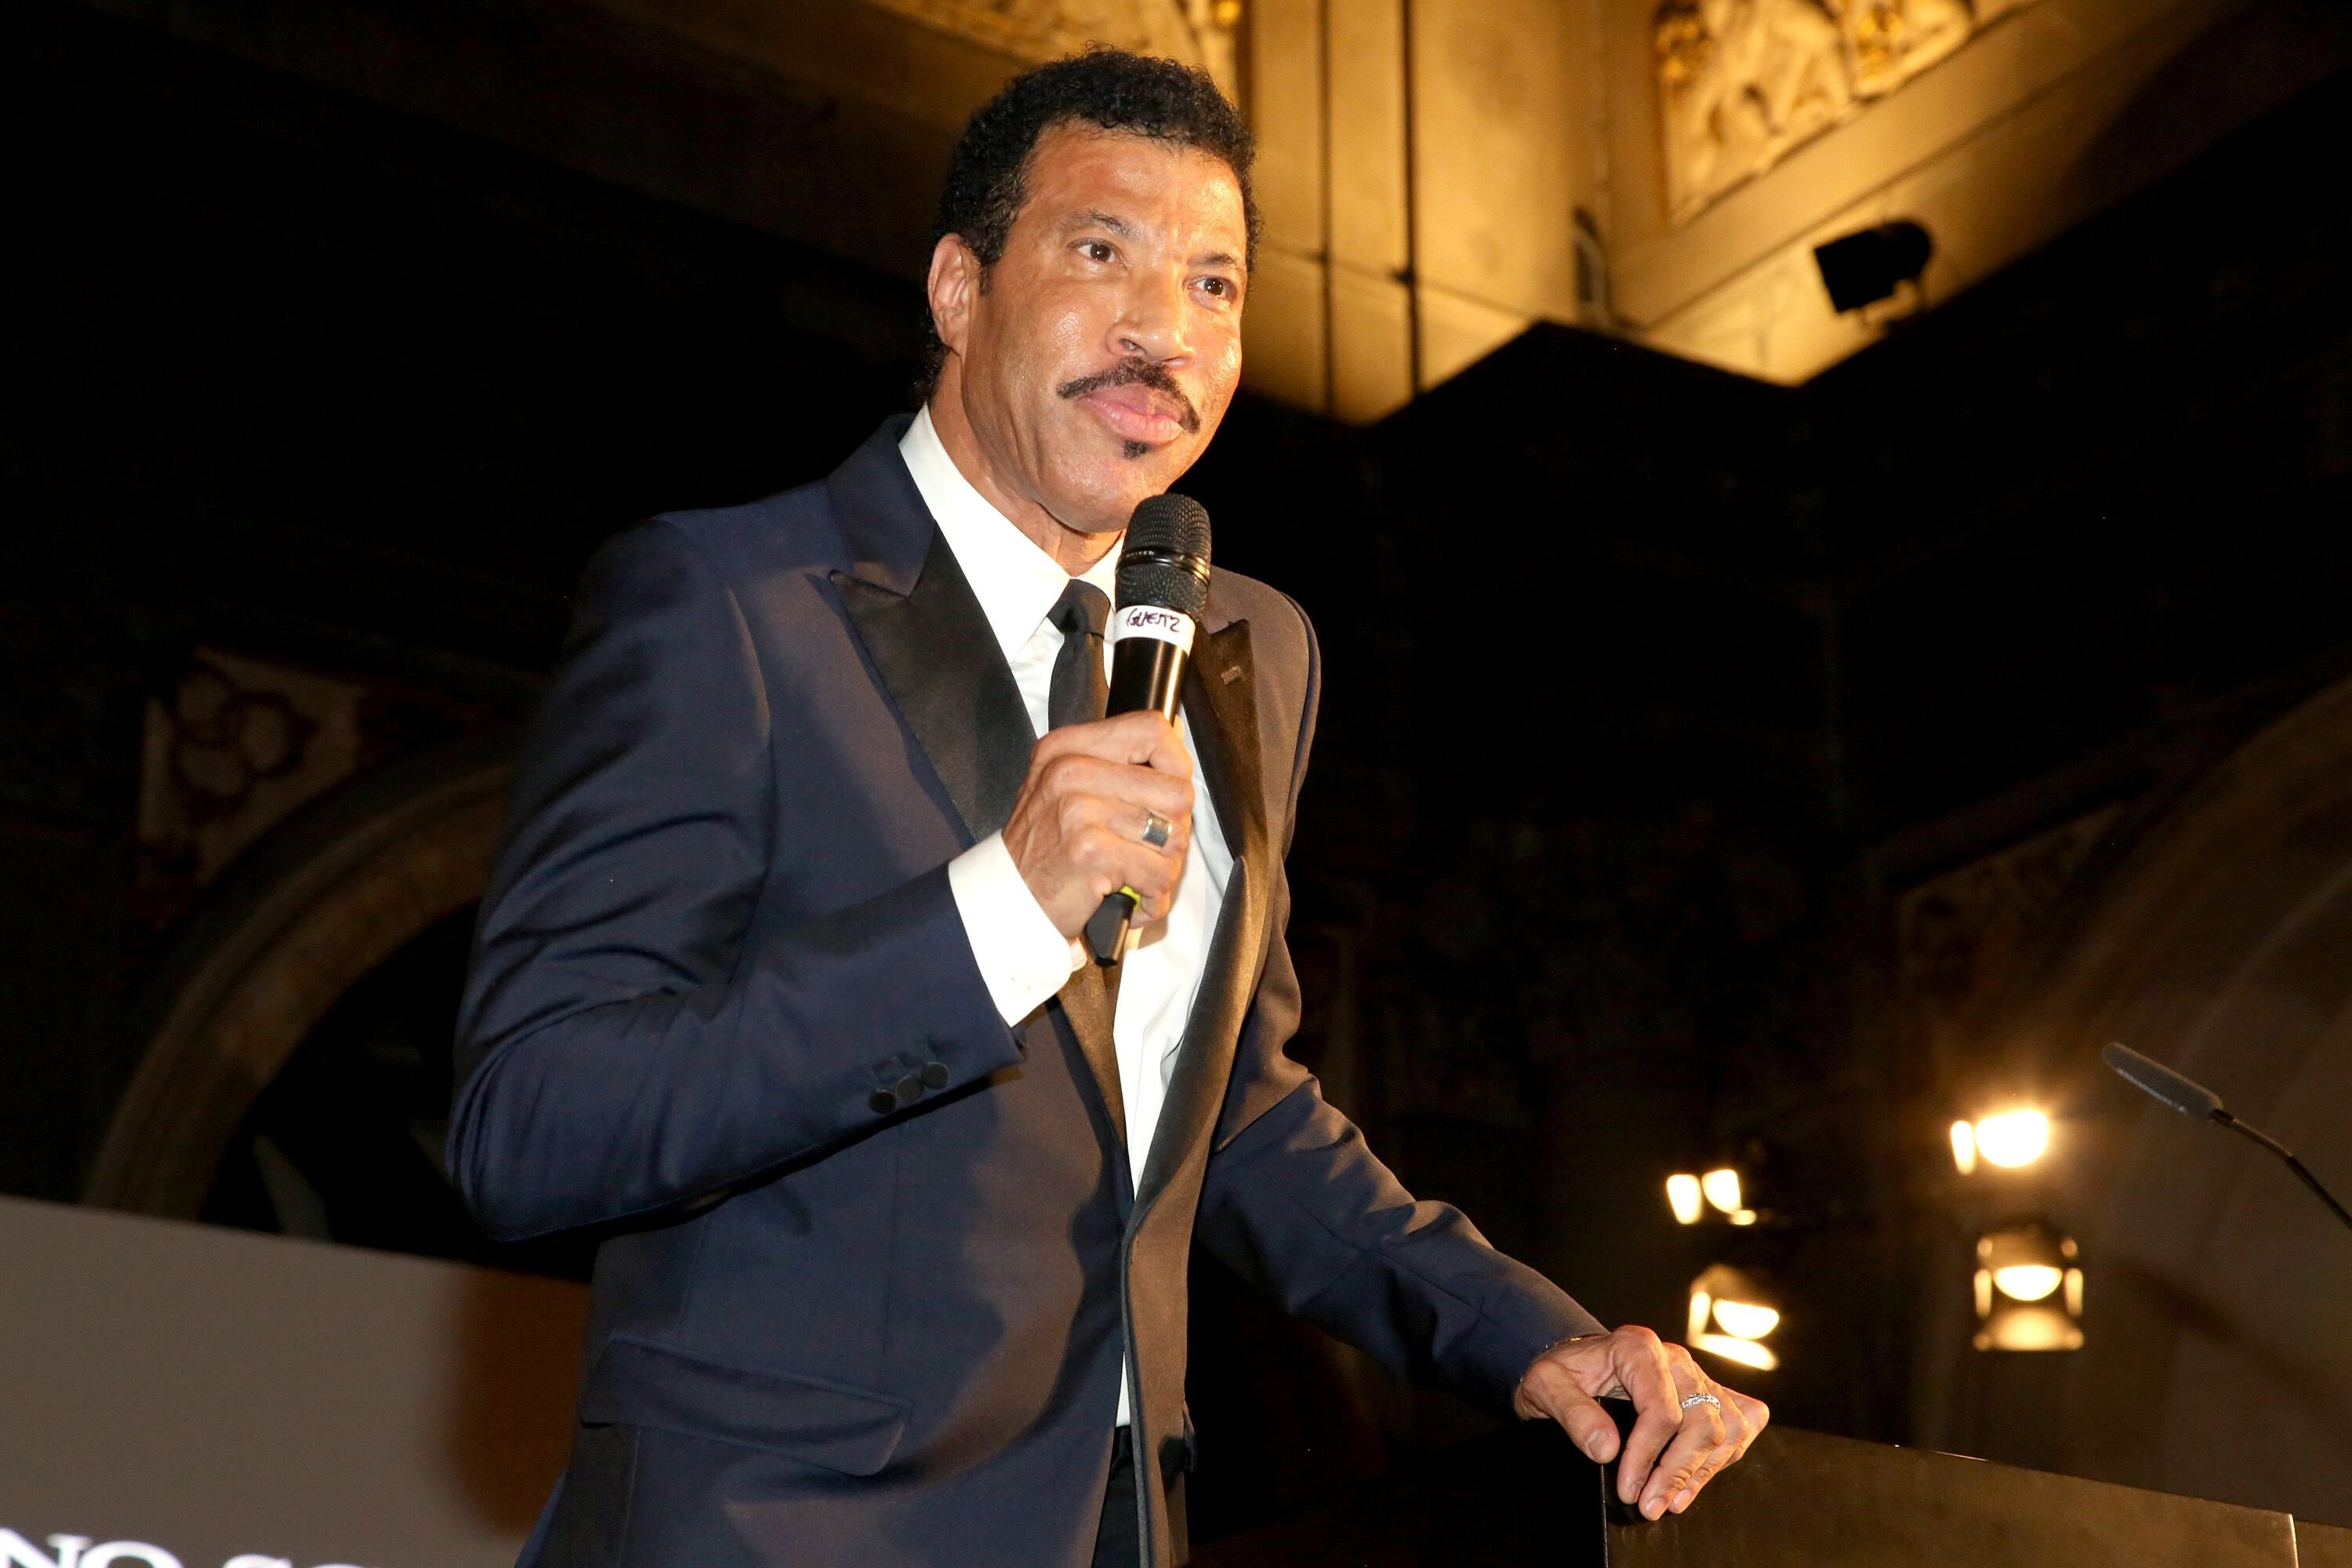 Lionel Richie accepts award during the Celebrity Fight Night gala celebrating Celebrity Fight Night In Italy benefitting The Andrea Bocelli Foundation and The Muhammad Ali Parkinson Center on September 7, 2014 | Photo: Getty Images